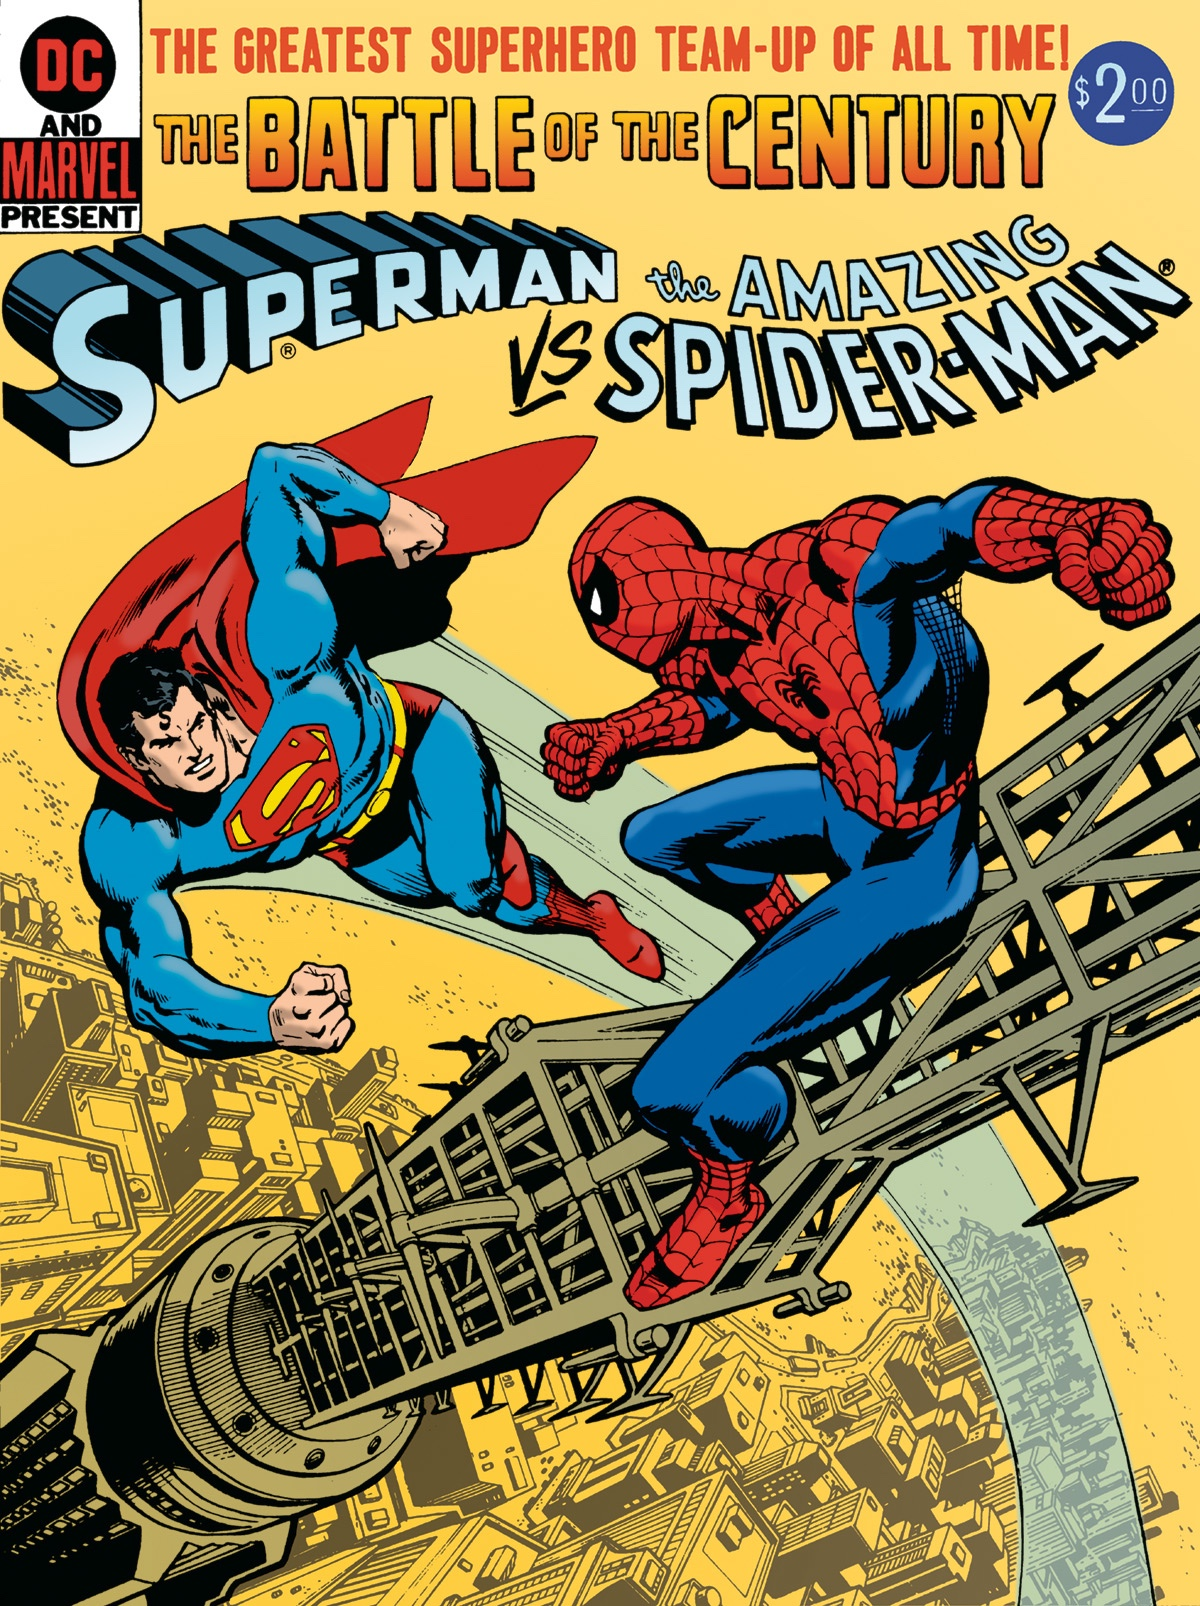 15 Most Groundbreaking Comic Book Covers Of All Time  15 Most Groundb...